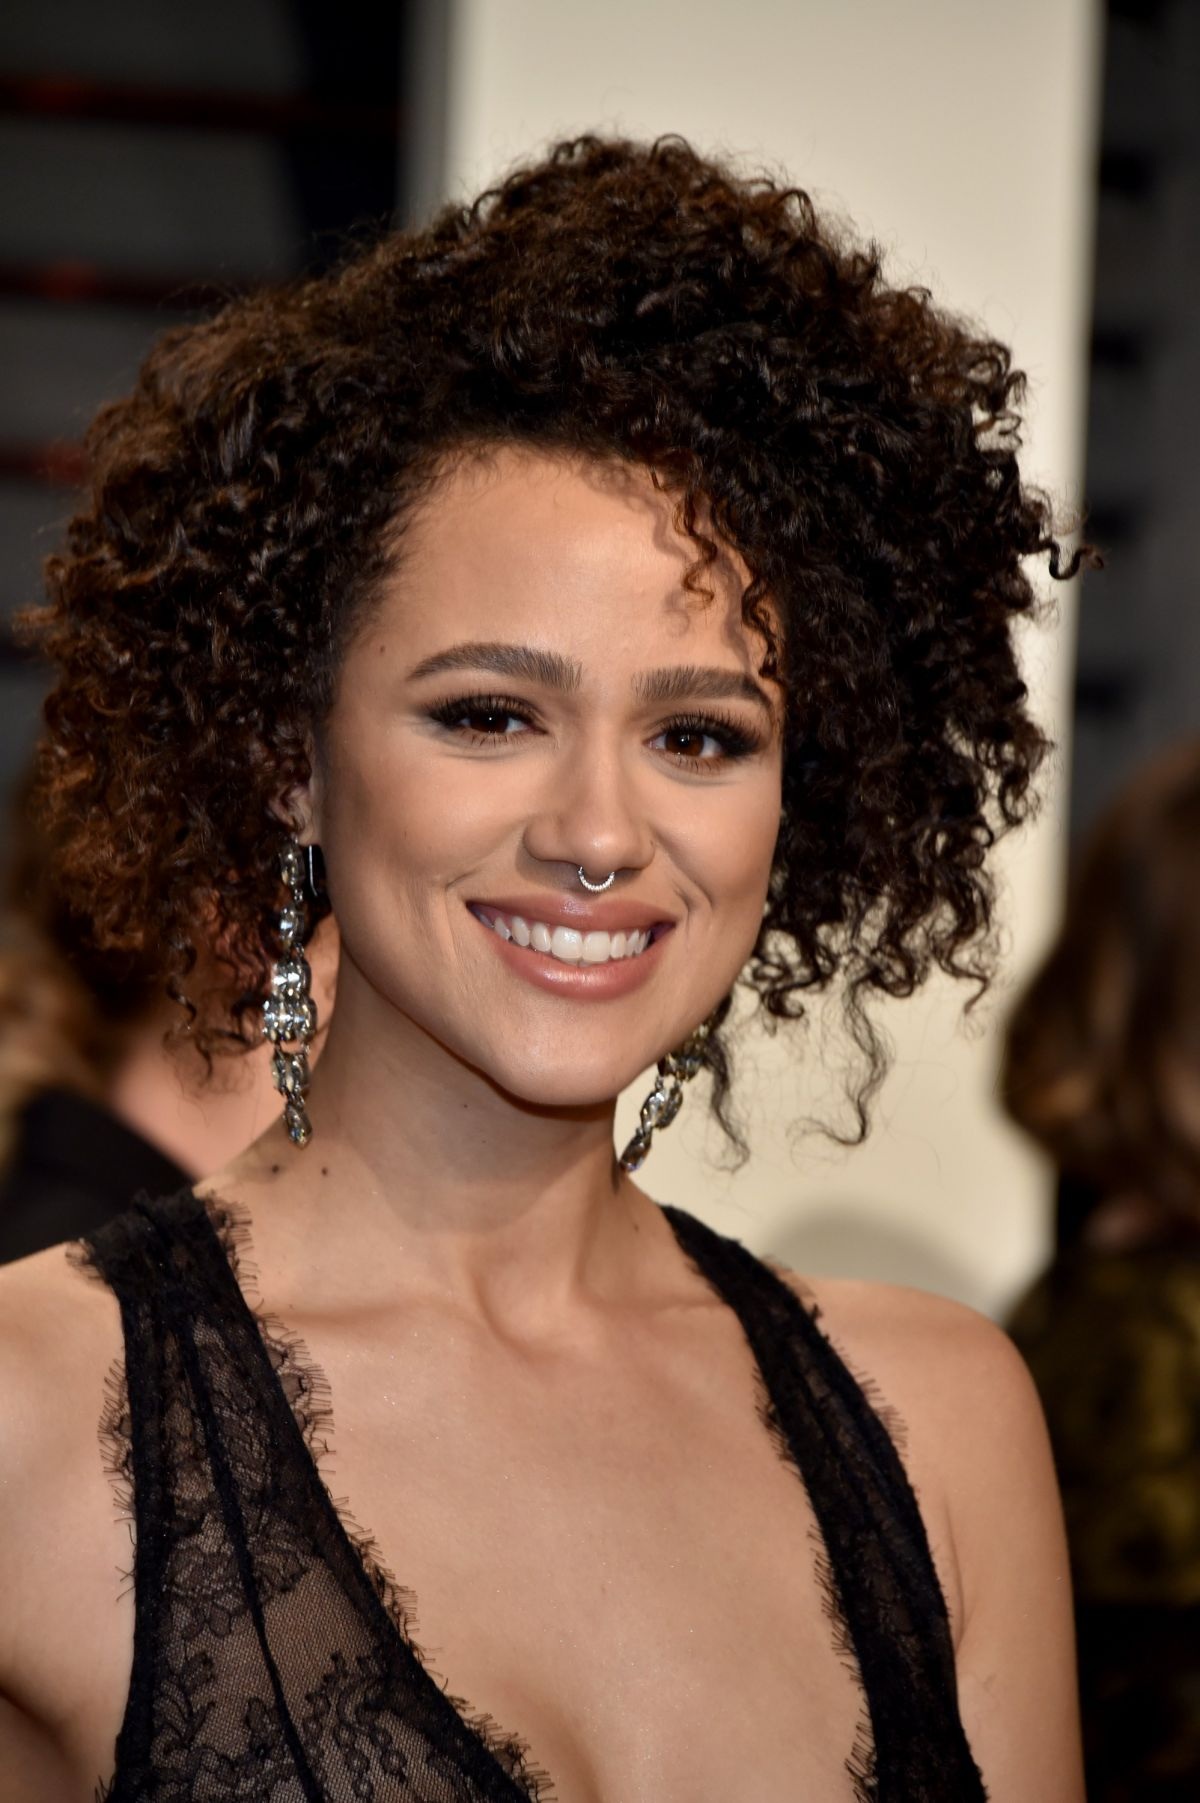 nathalie emmanuel at 2017 vanity fair oscar party in beverly hills